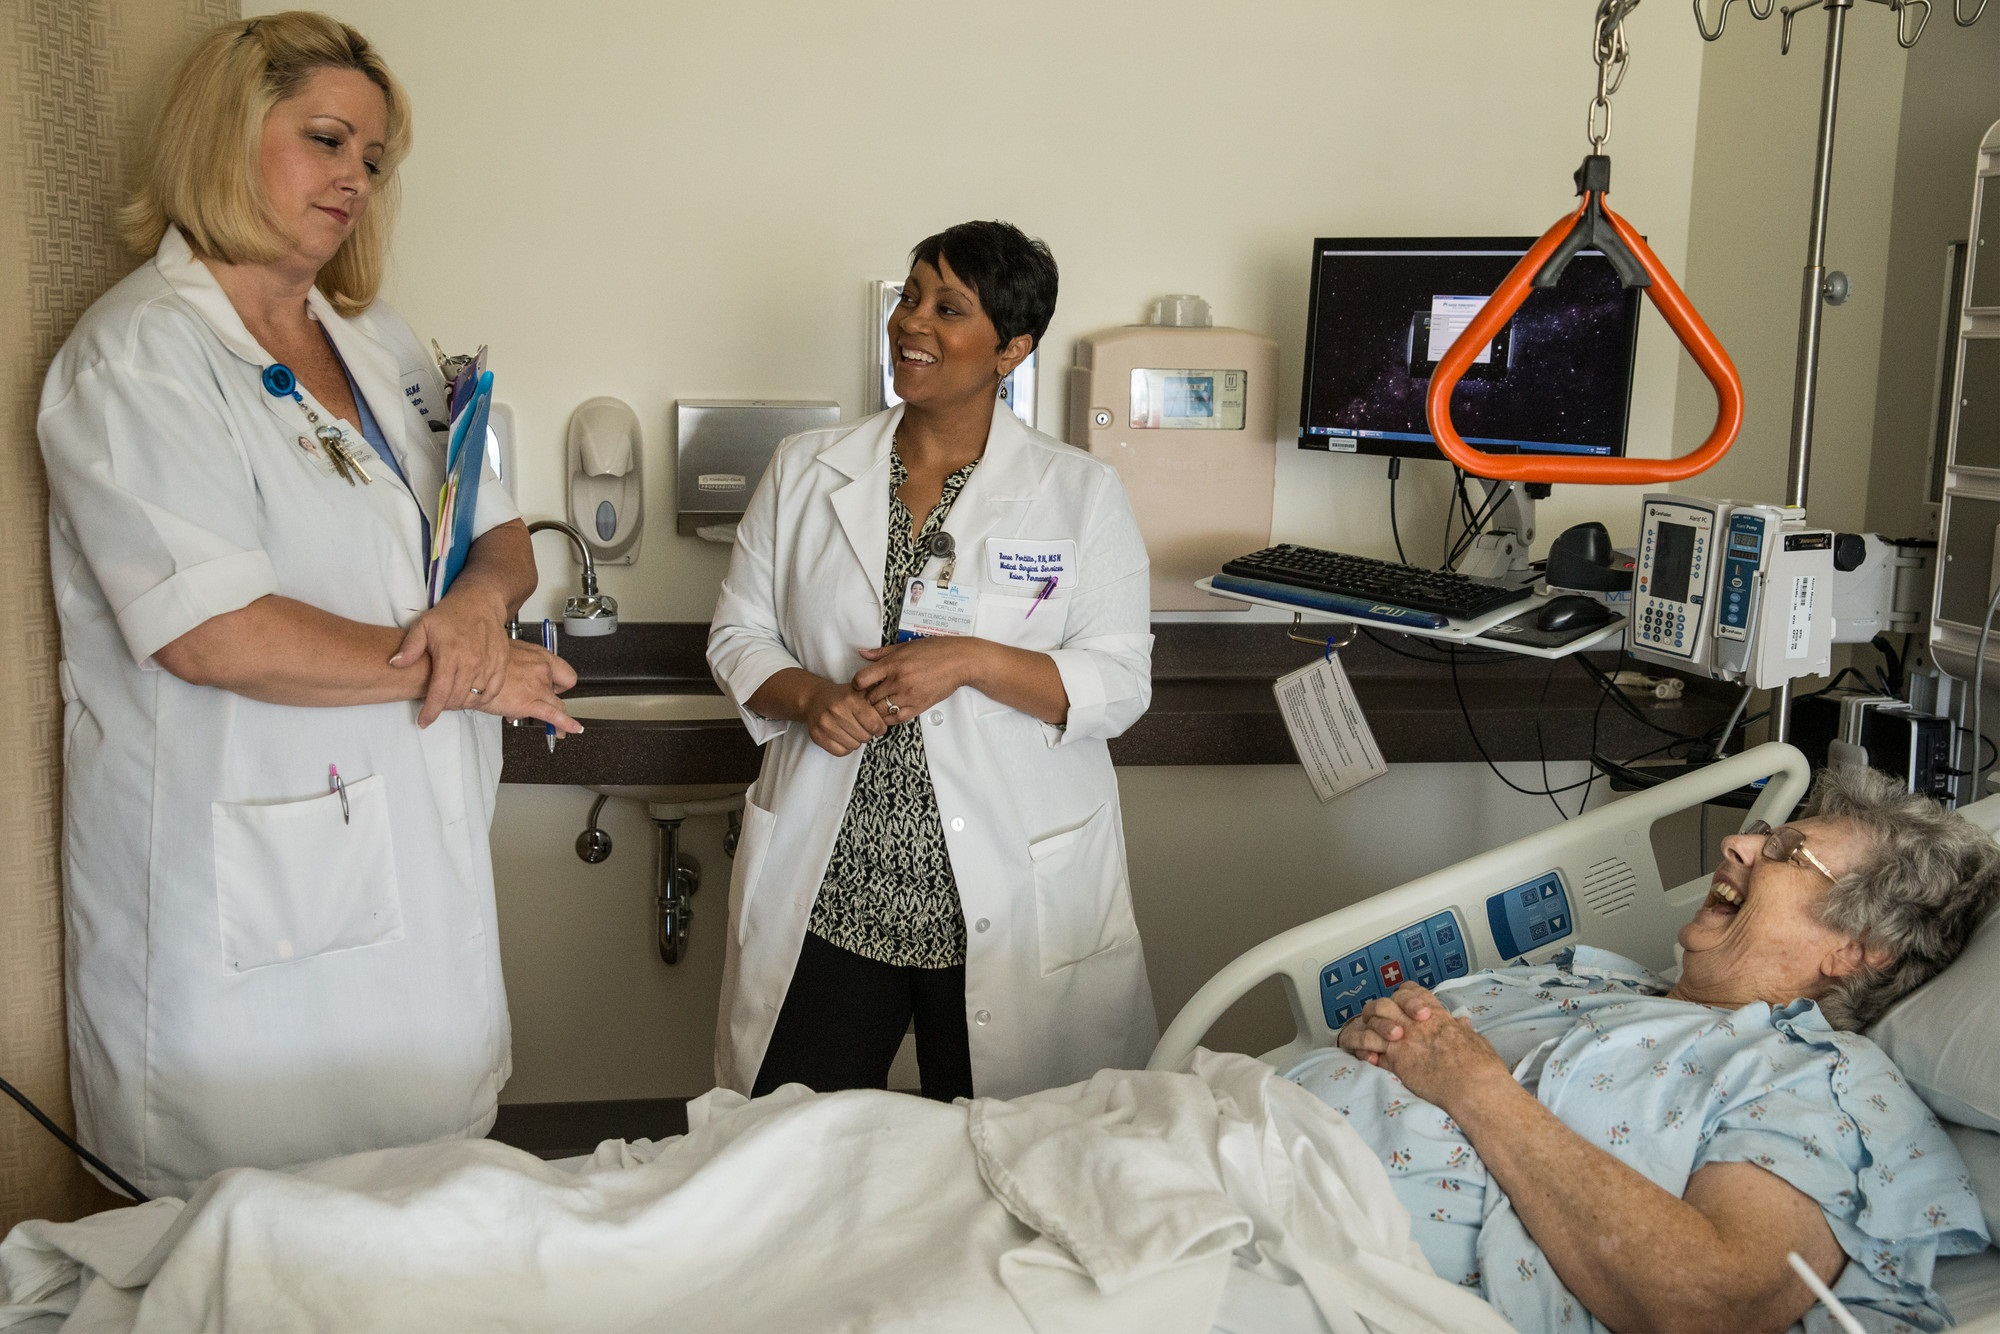 Two health care professionals in a hospital room with a patient